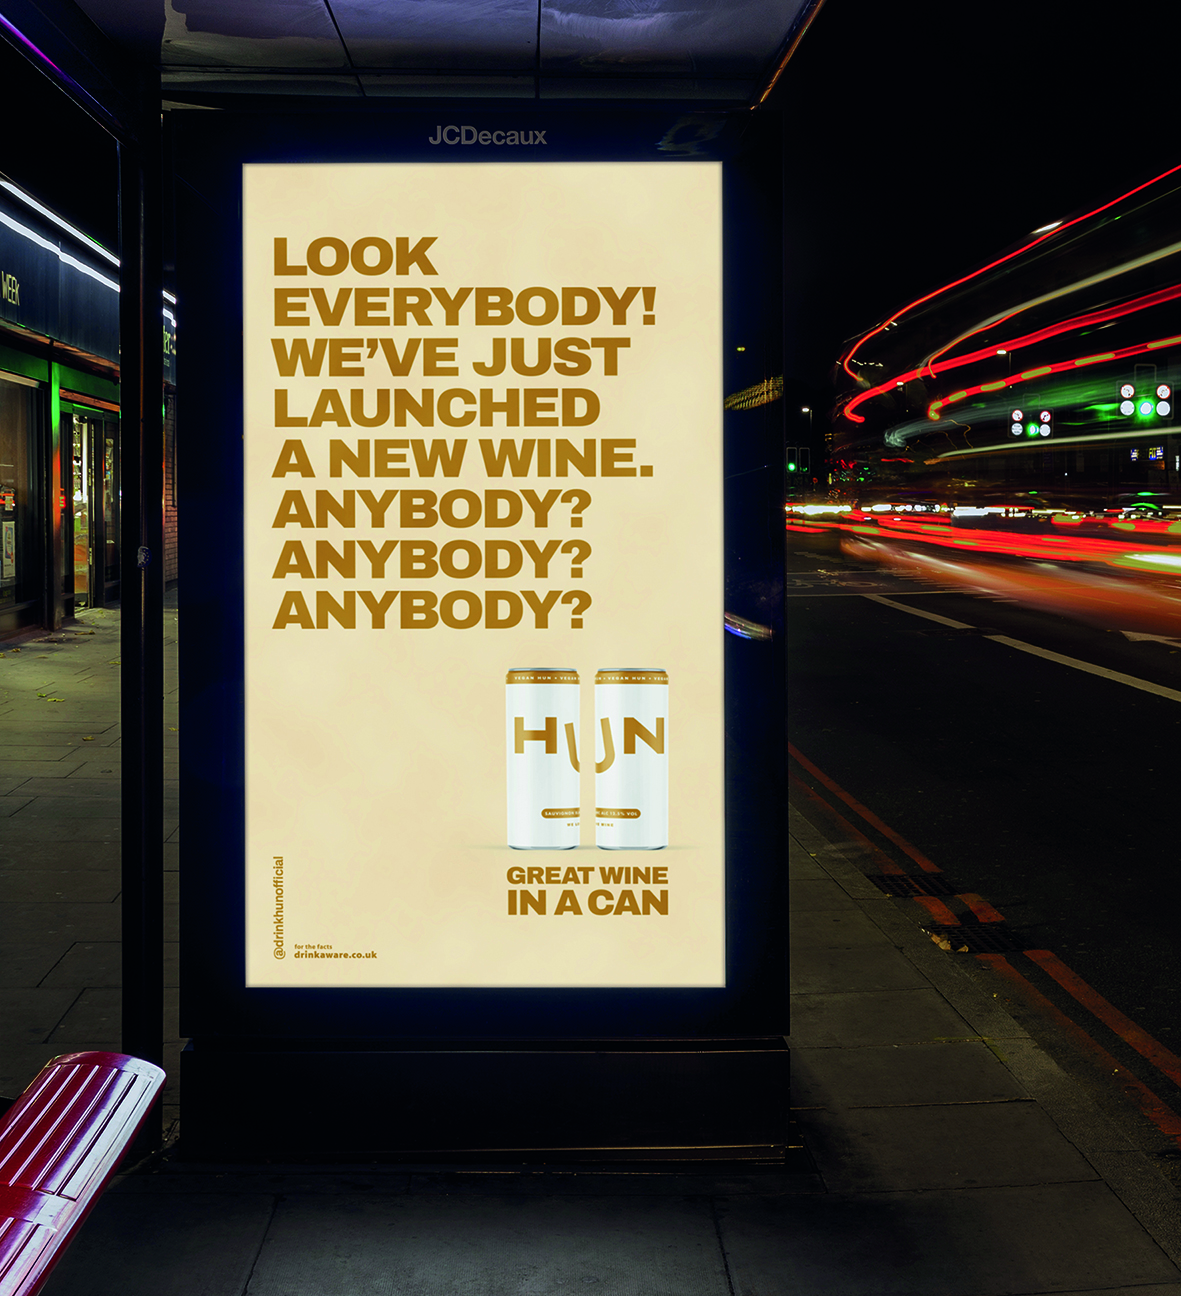 Hun: wine brand planned to launch during festival season